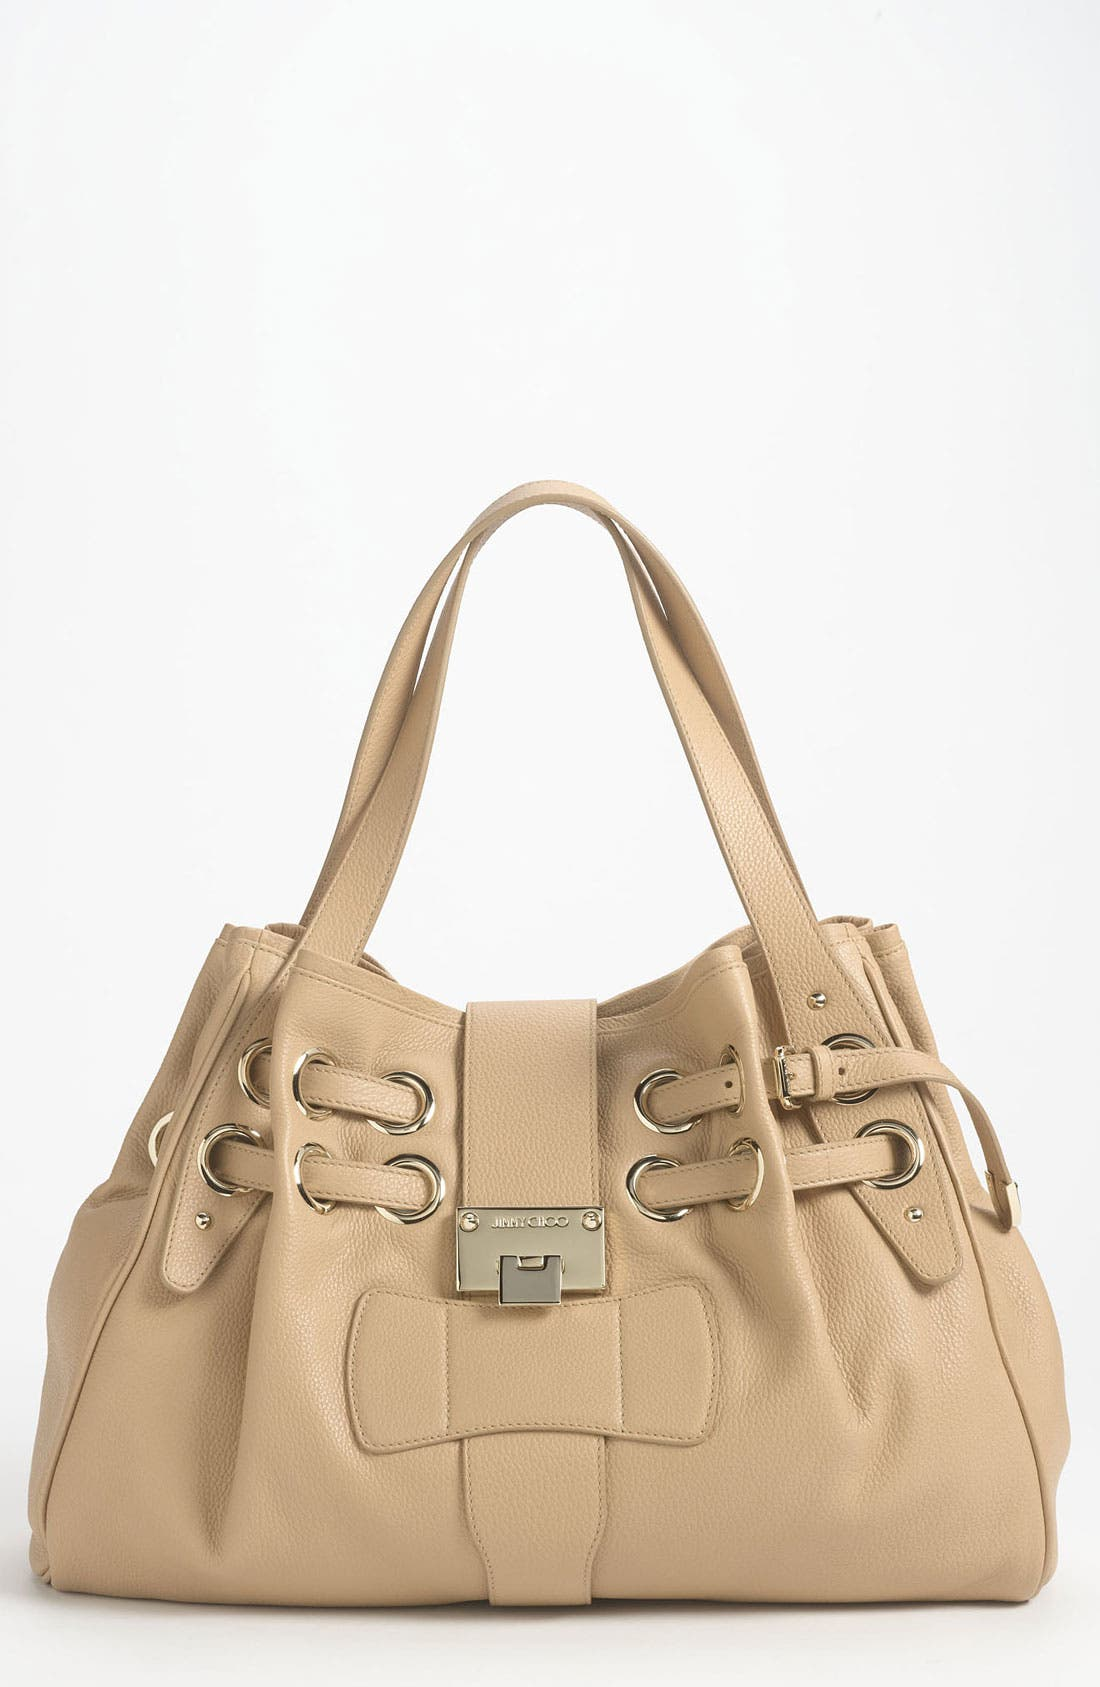 Alternate Image 1 Selected - Jimmy Choo 'Ramona' Leather Shopper